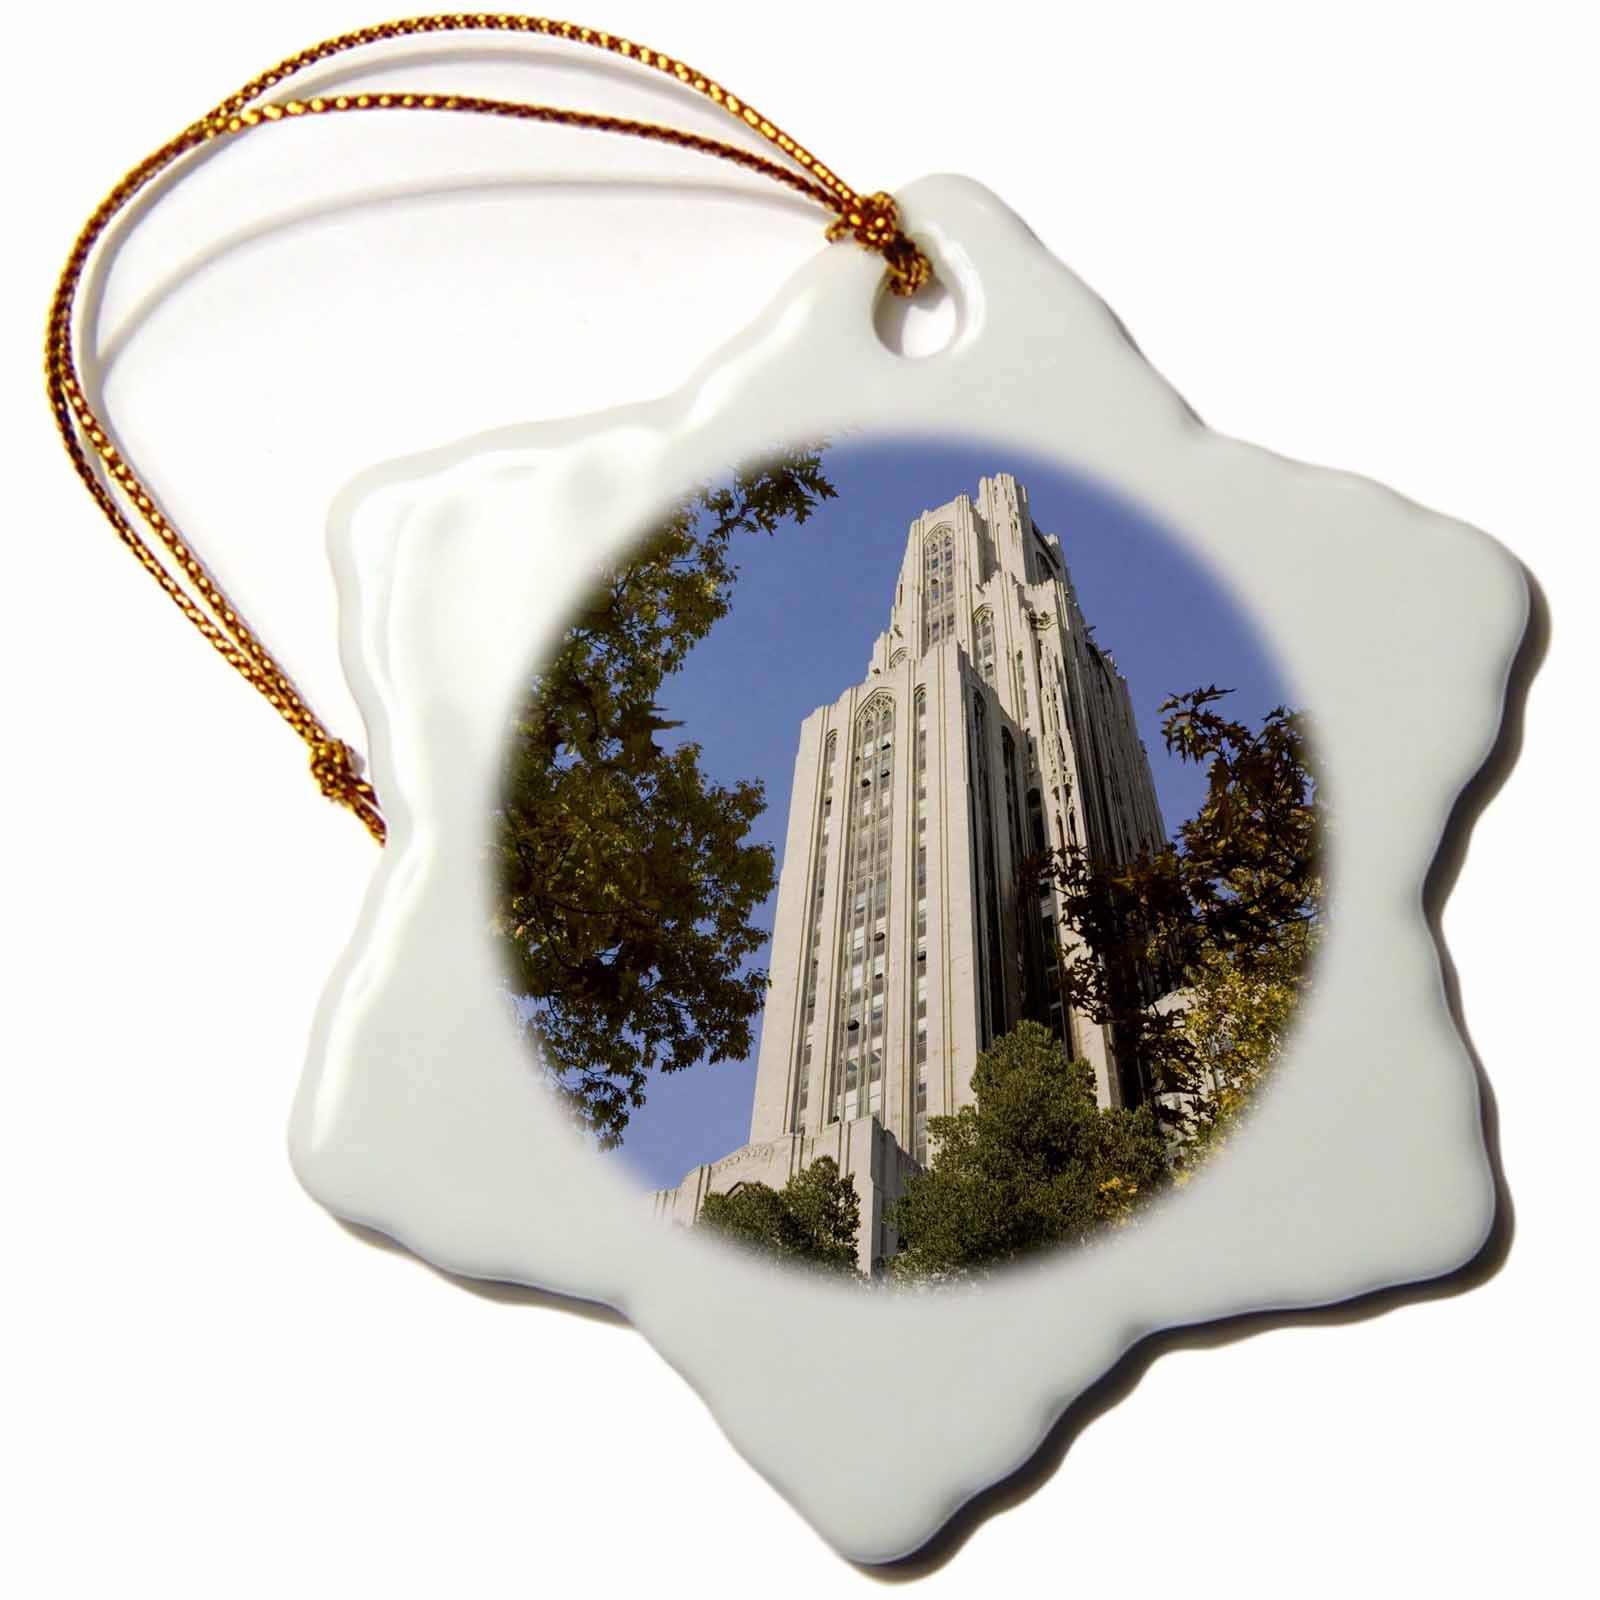 3dRose orn_94228_1 Pennsylvania, Pittsburg, Cathedral of Learning US39 WBI0051 Walter Bibikow Snowflake Porcelain Ornament, 3-Inch